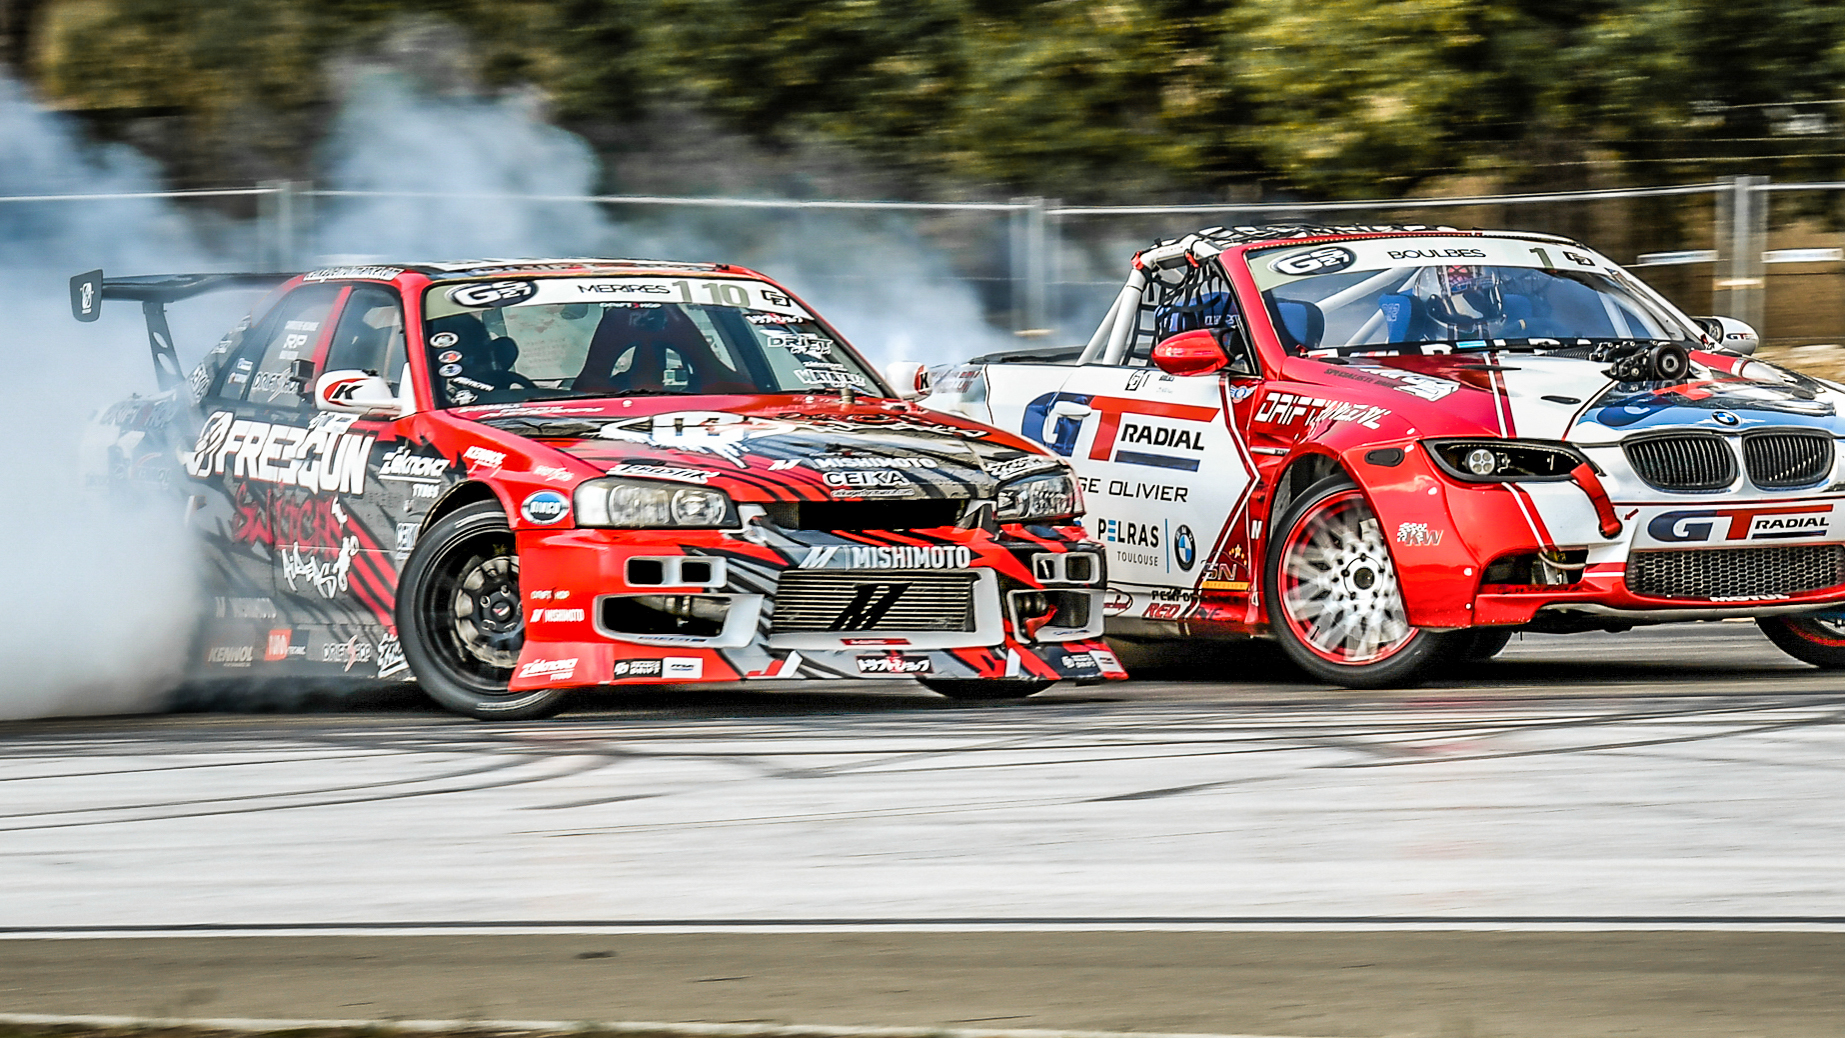 BMW E93 VS SKYLINE ER34 - BATTLE TOP 16 - CFD ROUND 2